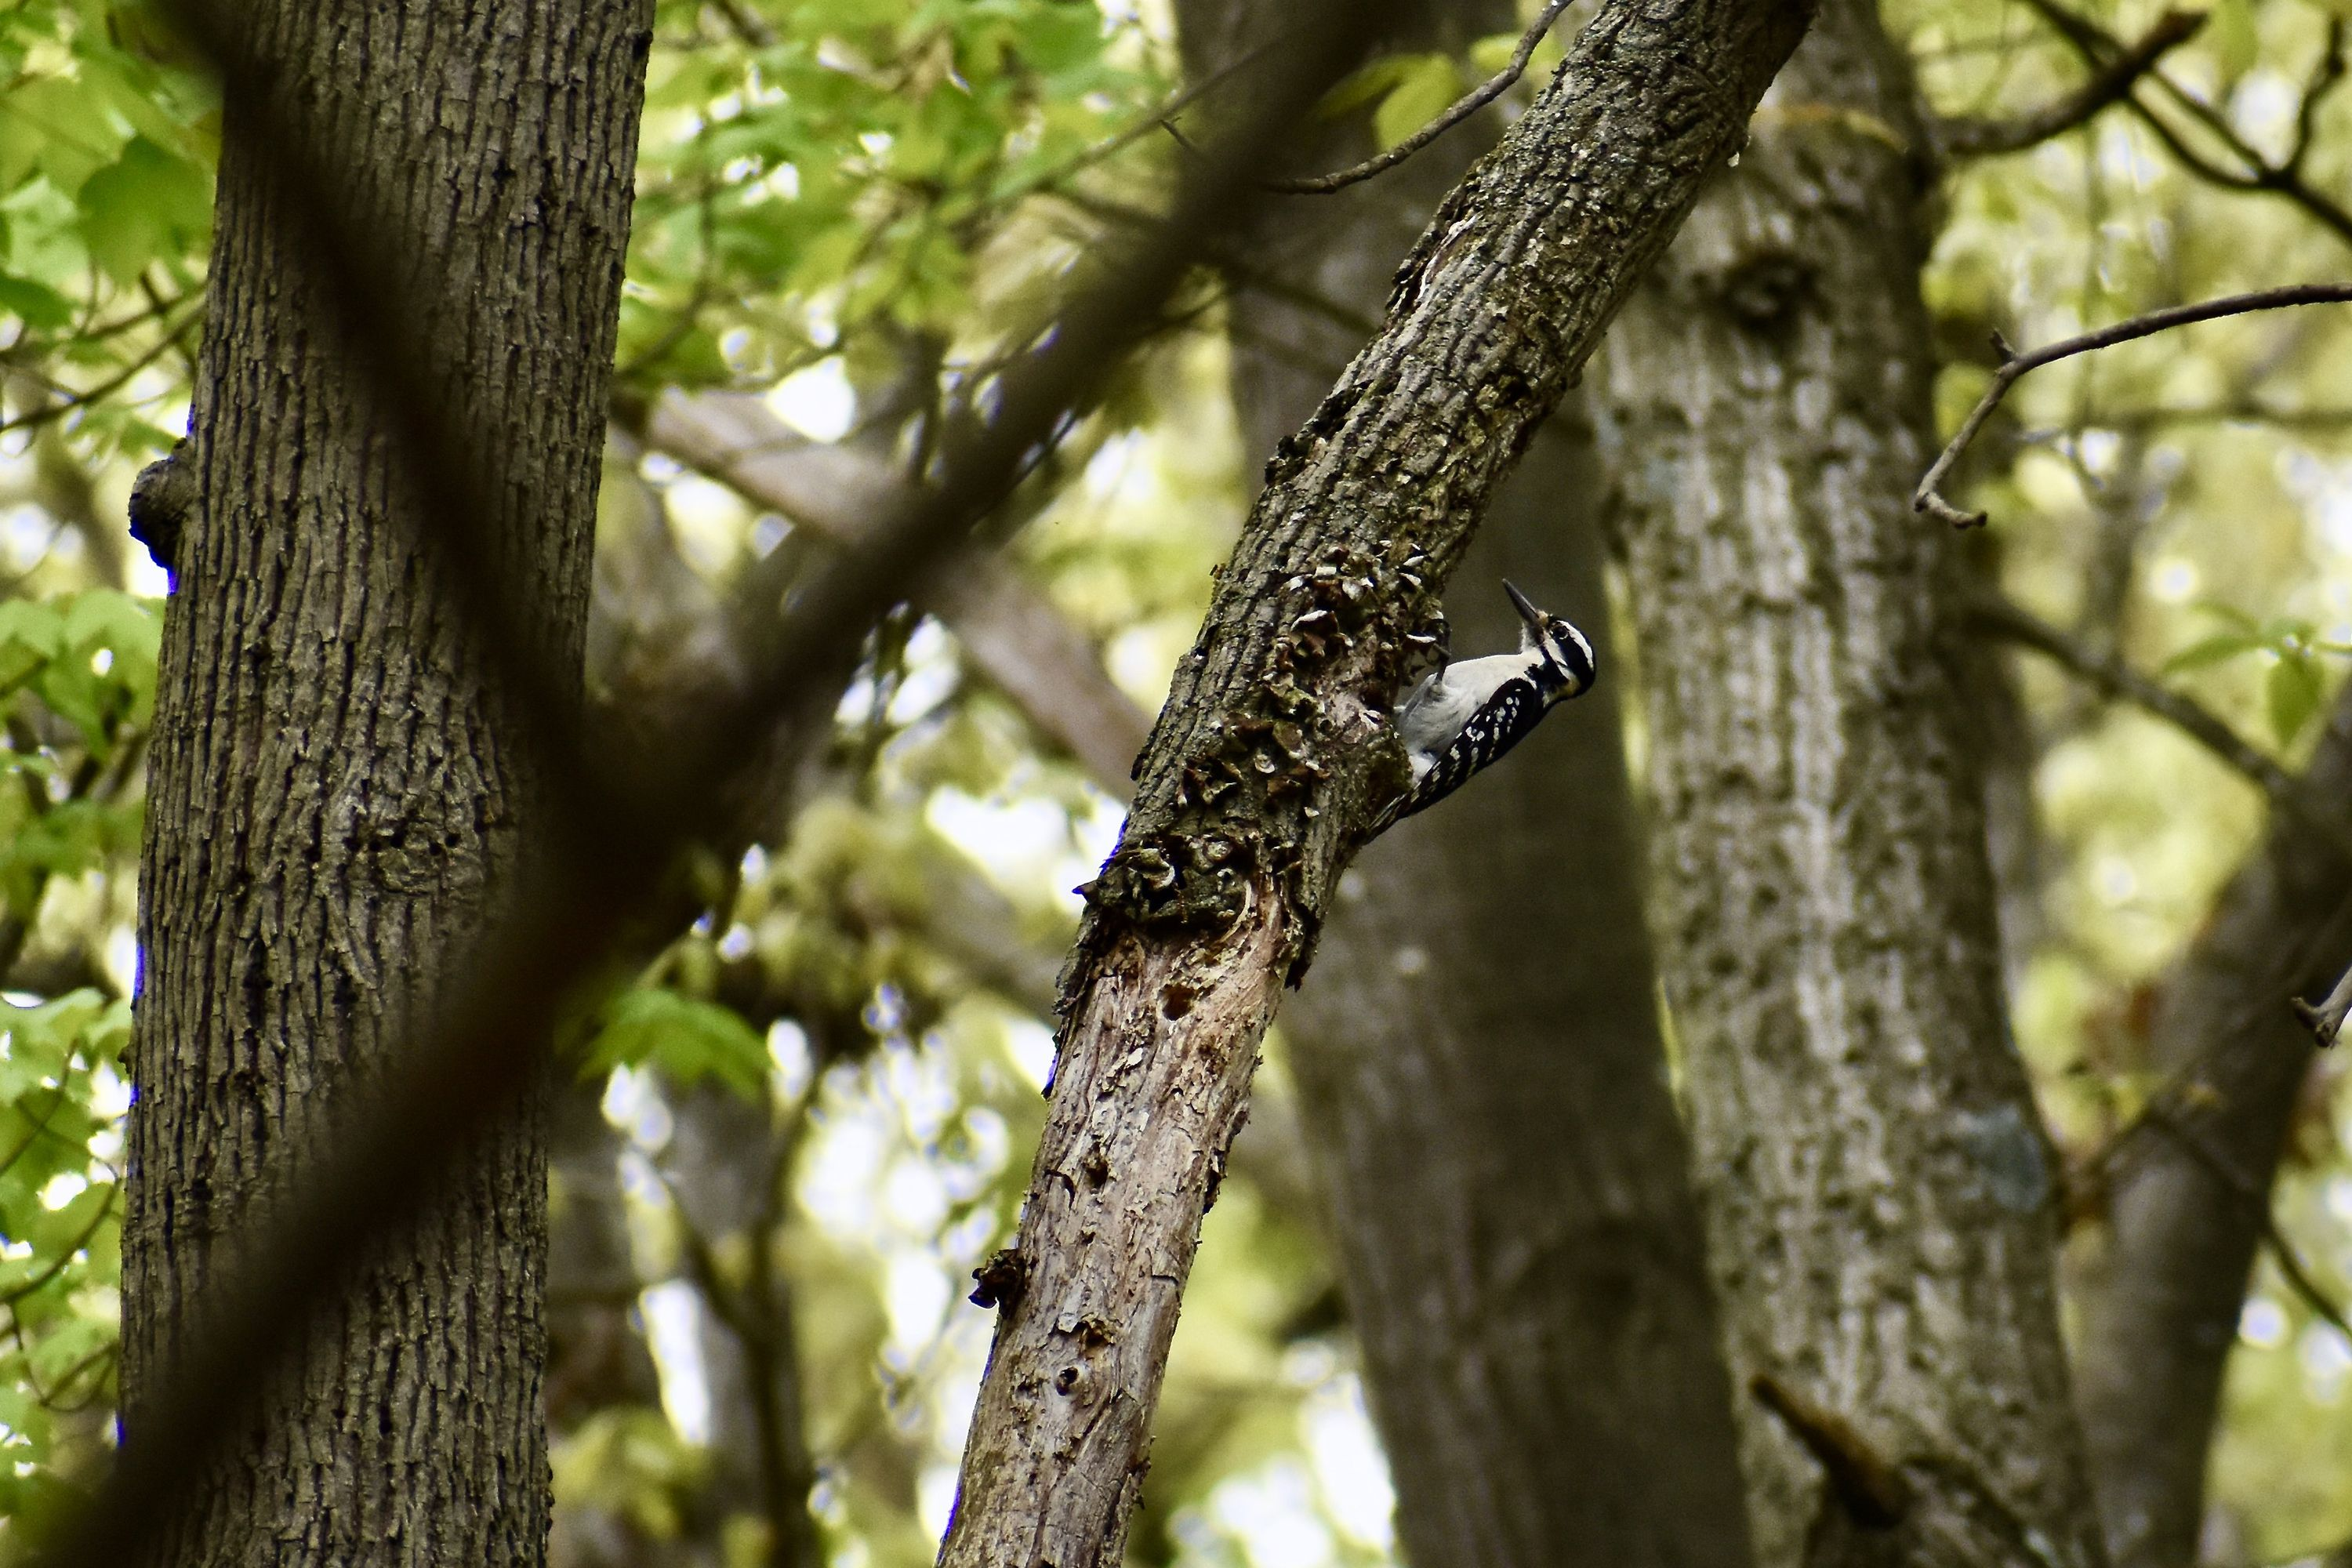 A downy woodpecker perches on the side of a tree. A small black and white bird is viewed in profile in a forest. The bird has a white breast and black mask stripe across its eyes.